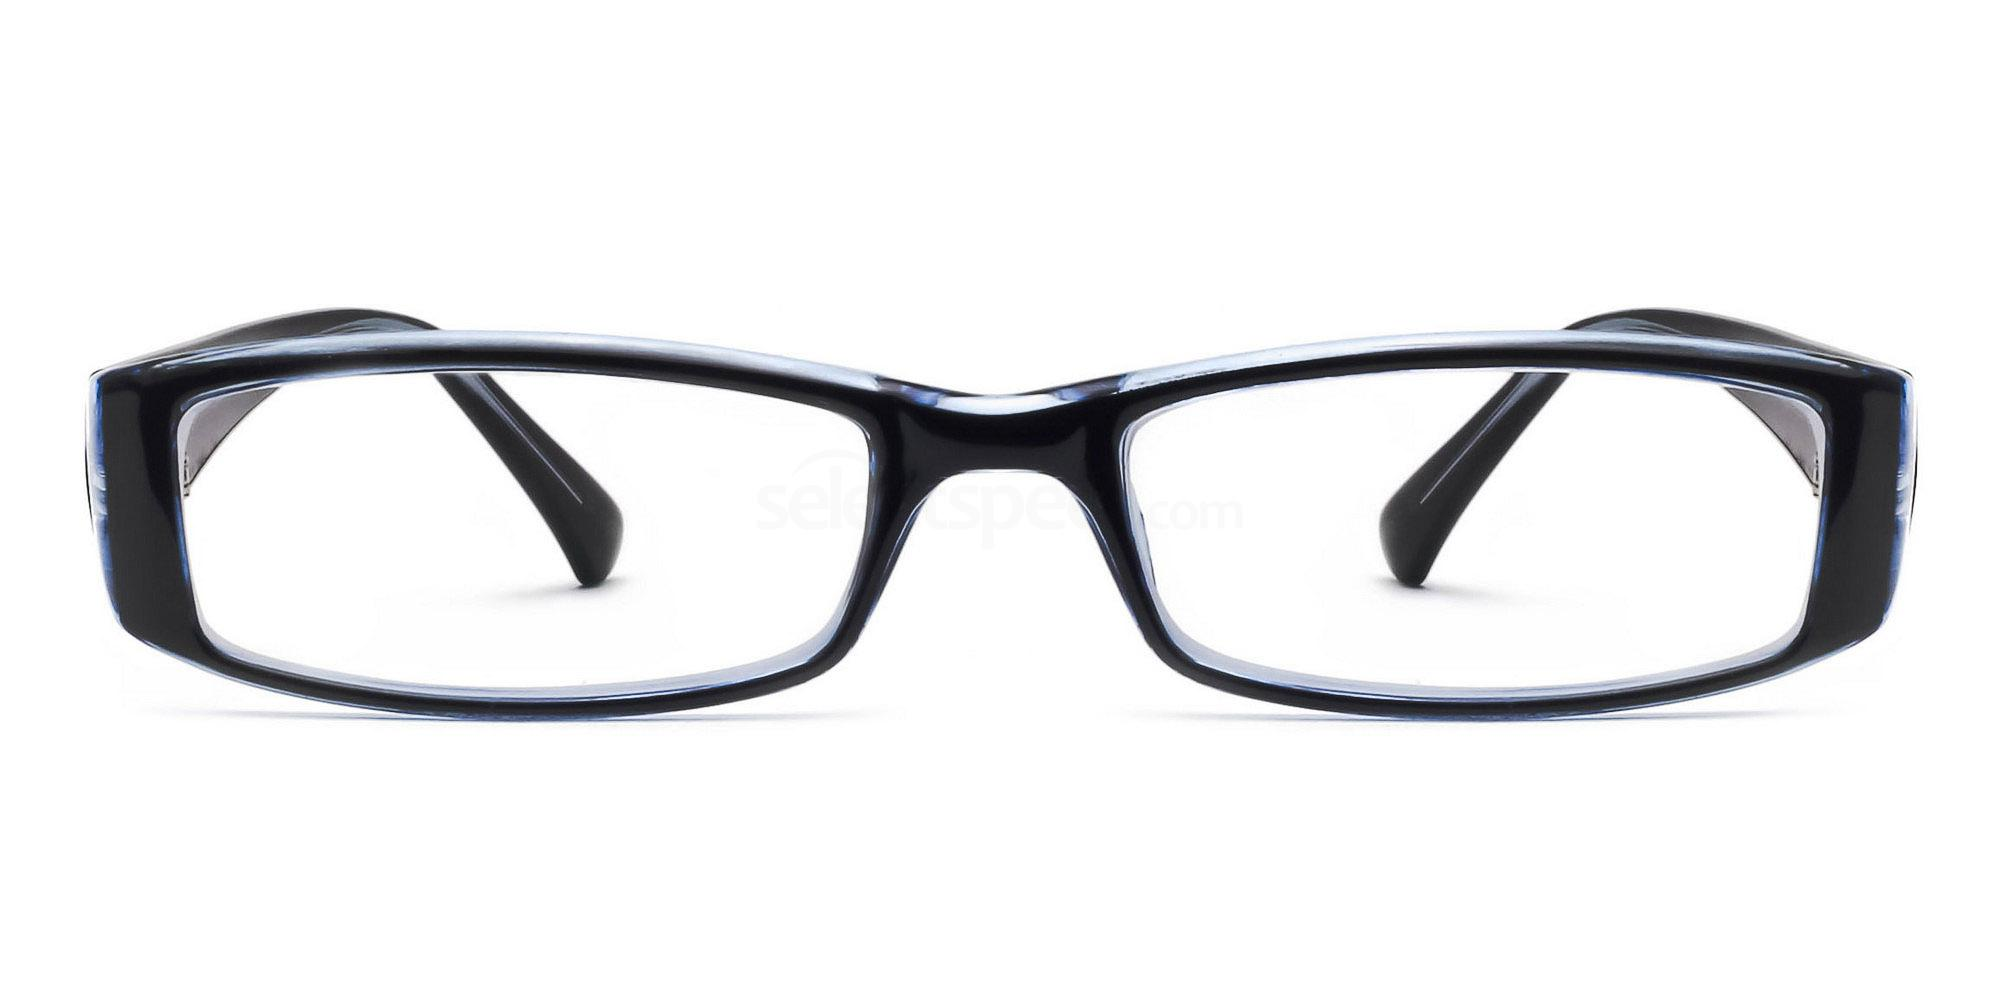 C48 P2251 - Black and Blue Glasses, Savannah